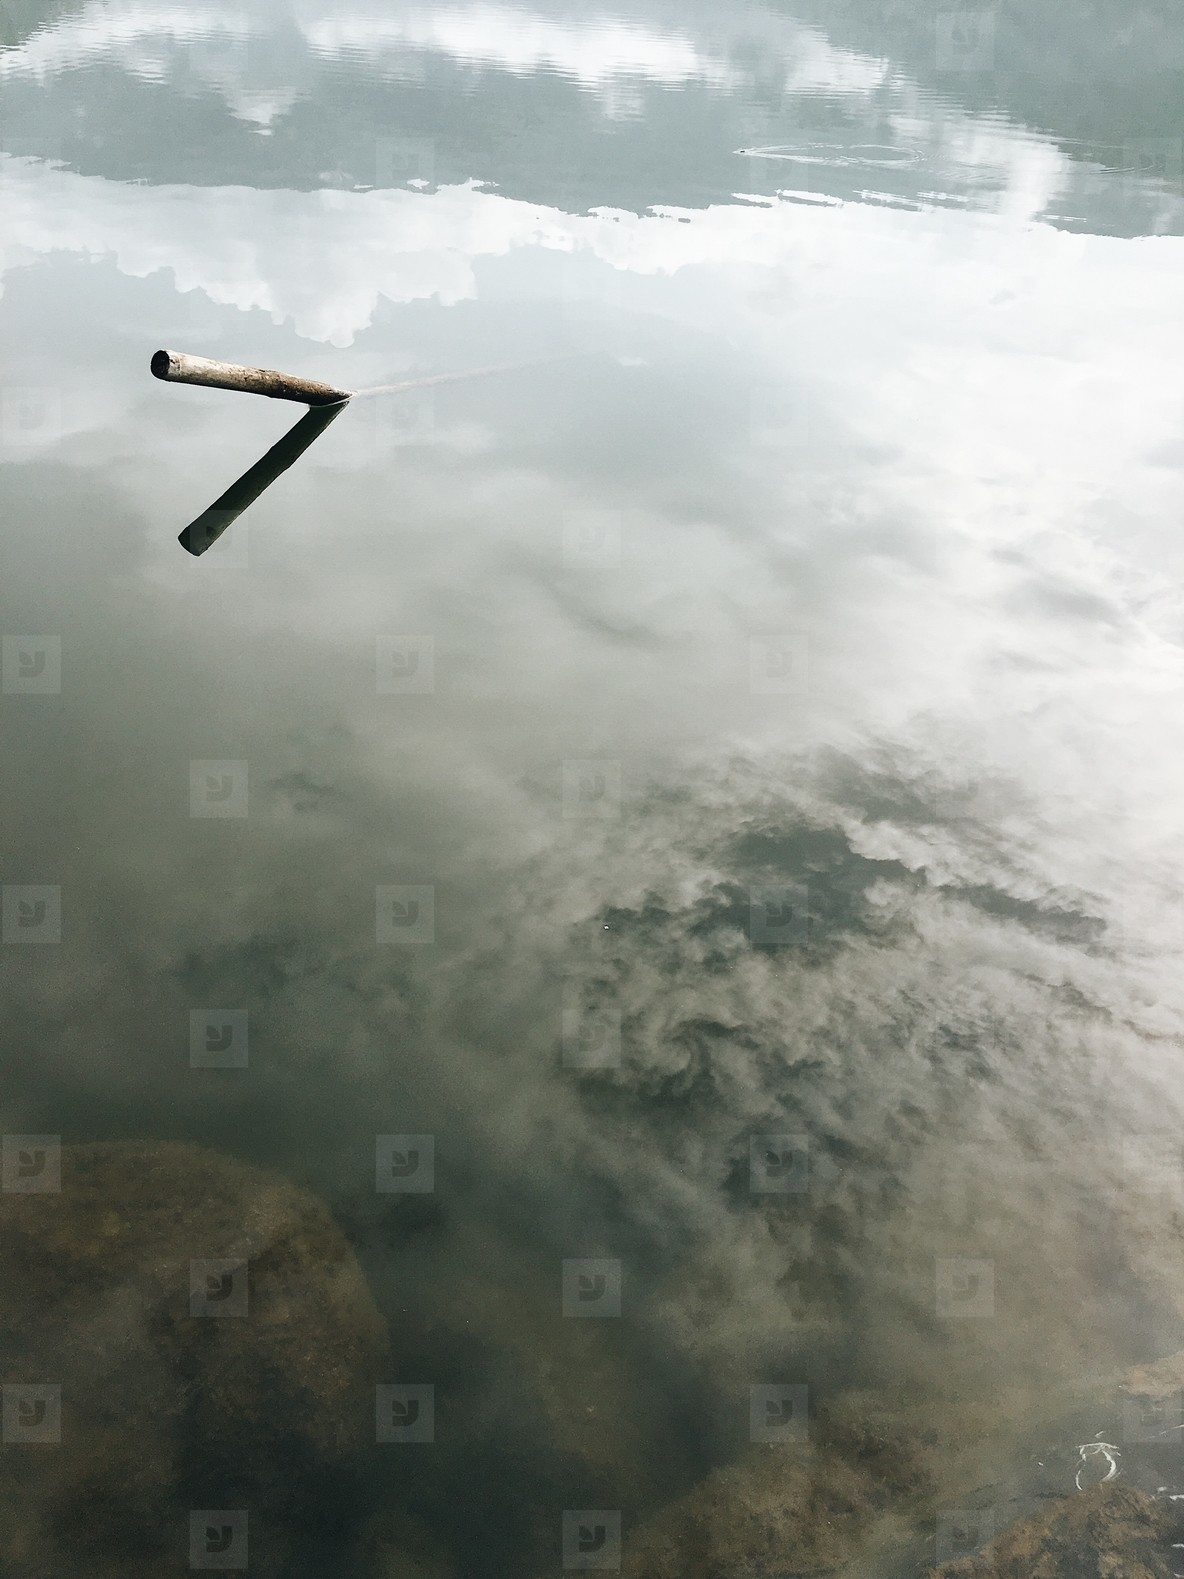 Reflections of clouds in water